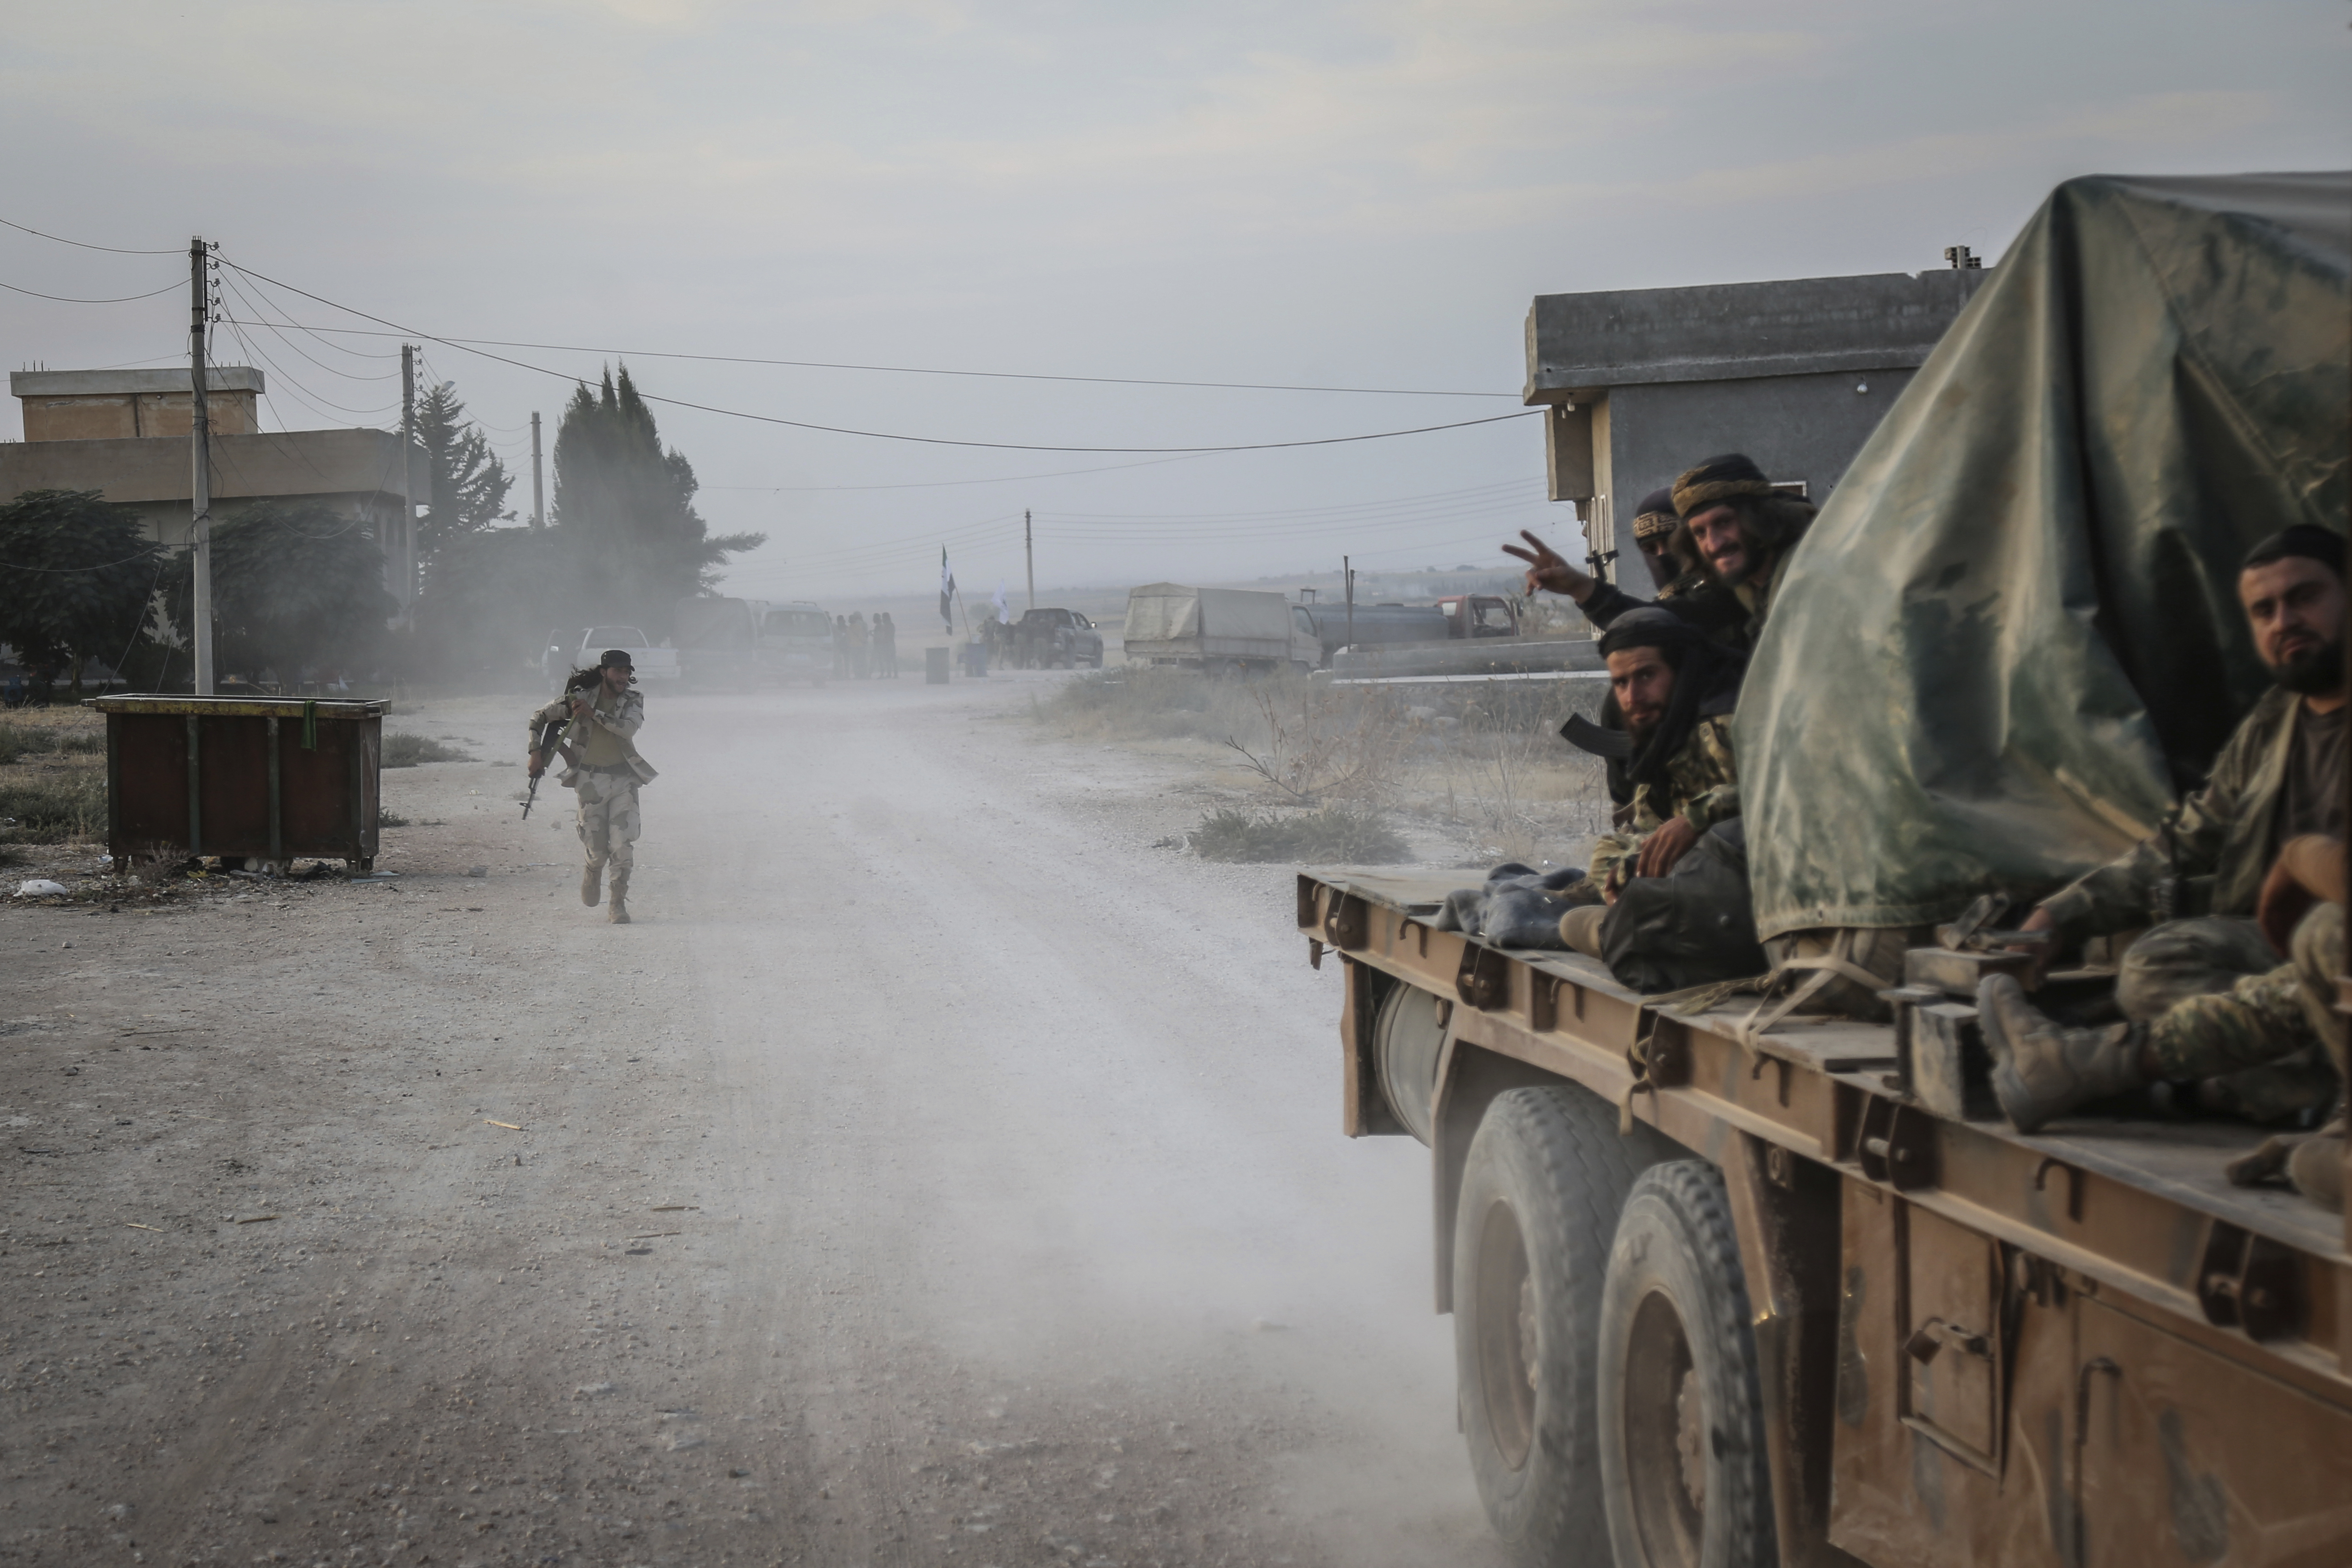 14 October 2019, Syria, Tell Abiad: Soldiers of the Turkish-backed Syrian National Army gesture after clashes with Kurdish fighters. Photo by: Anas Alkharboutli/picture-alliance/dpa/AP Images